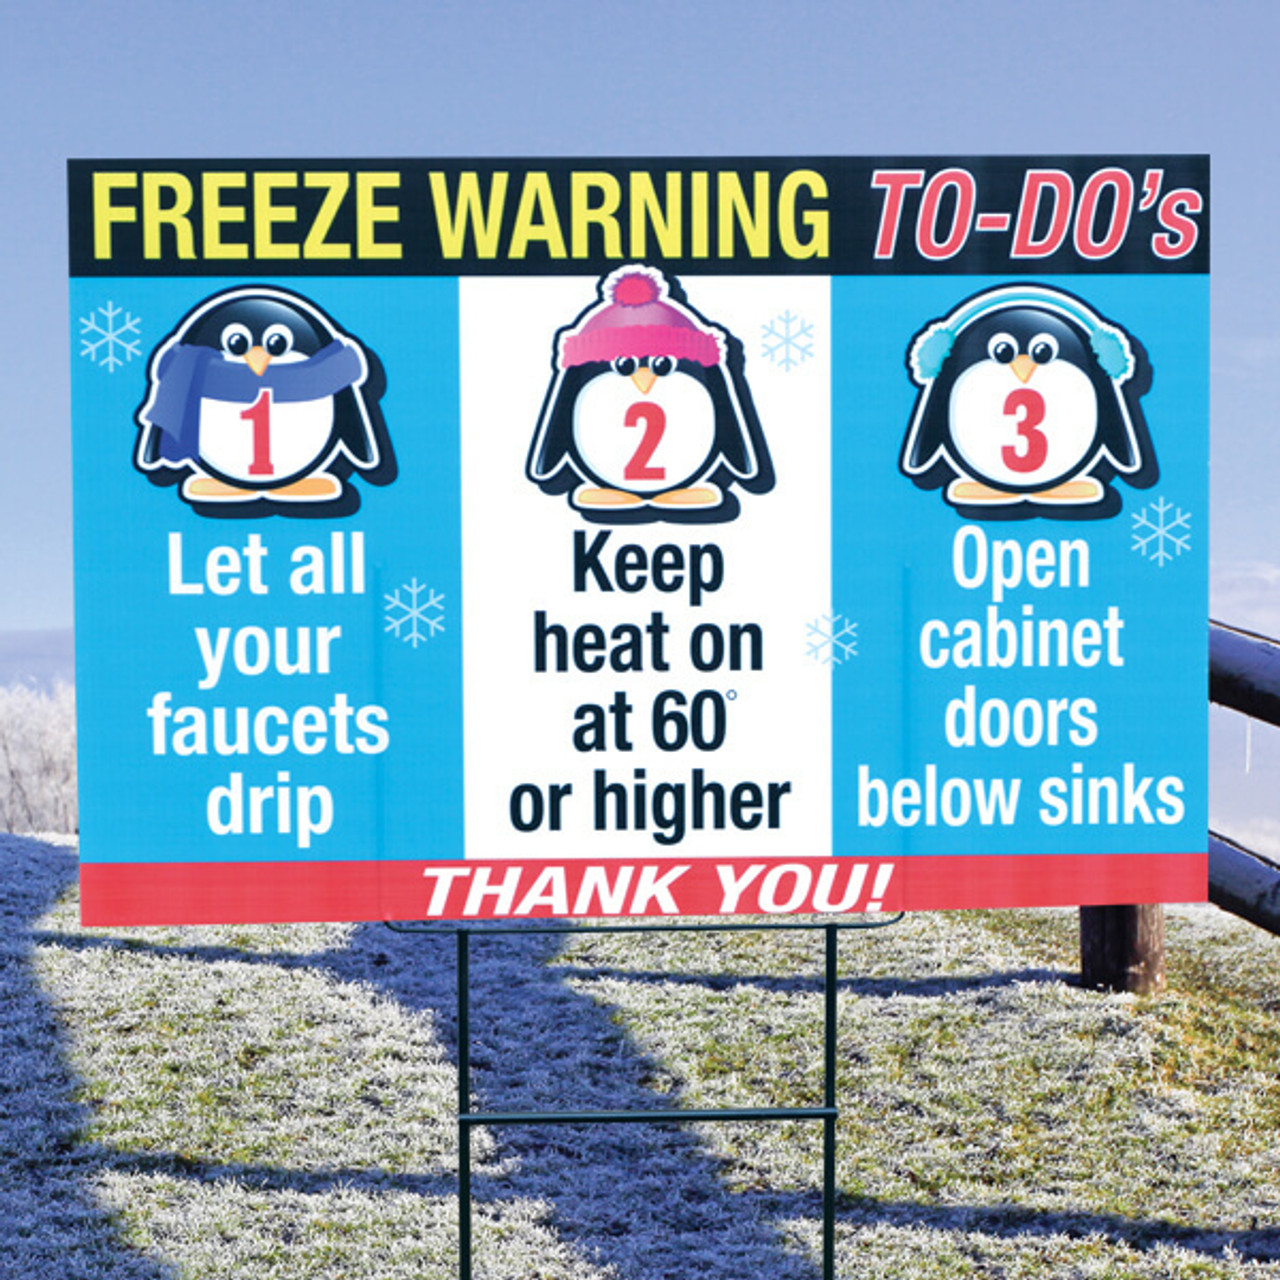 Freeze Warning - To-Do's